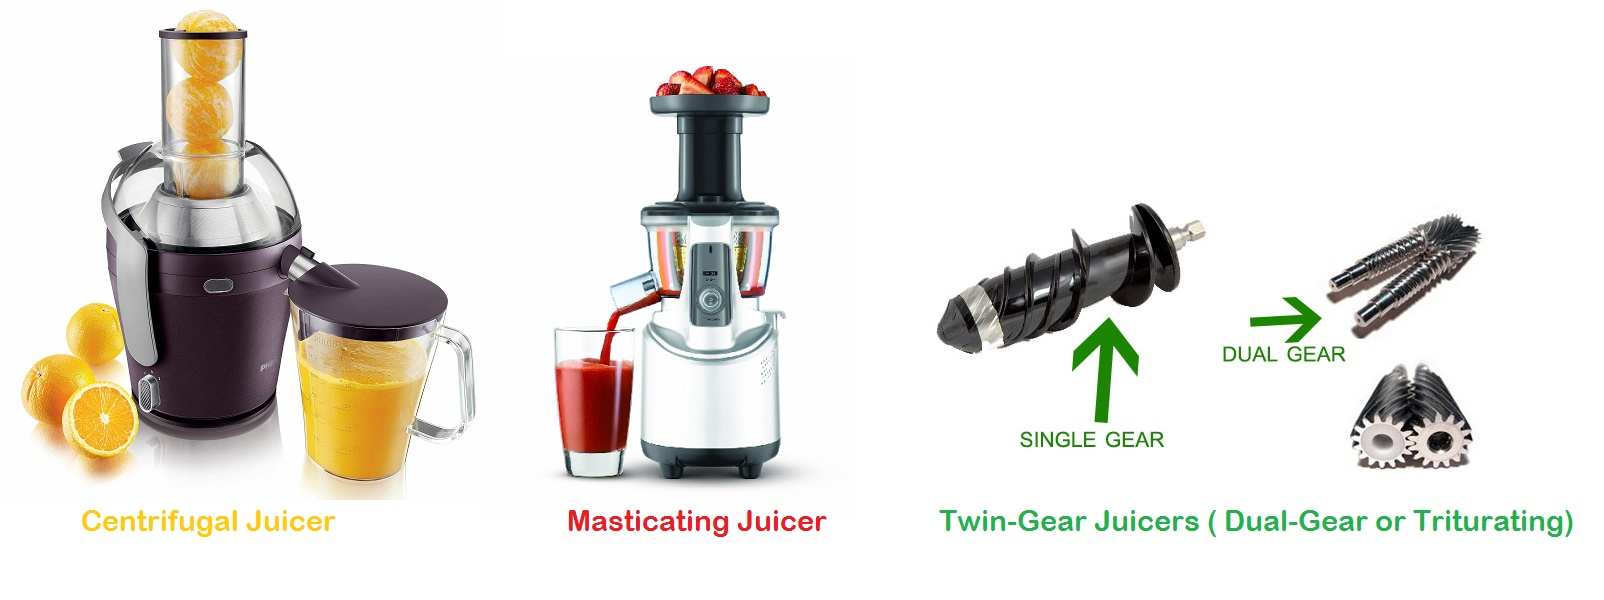 juicers types